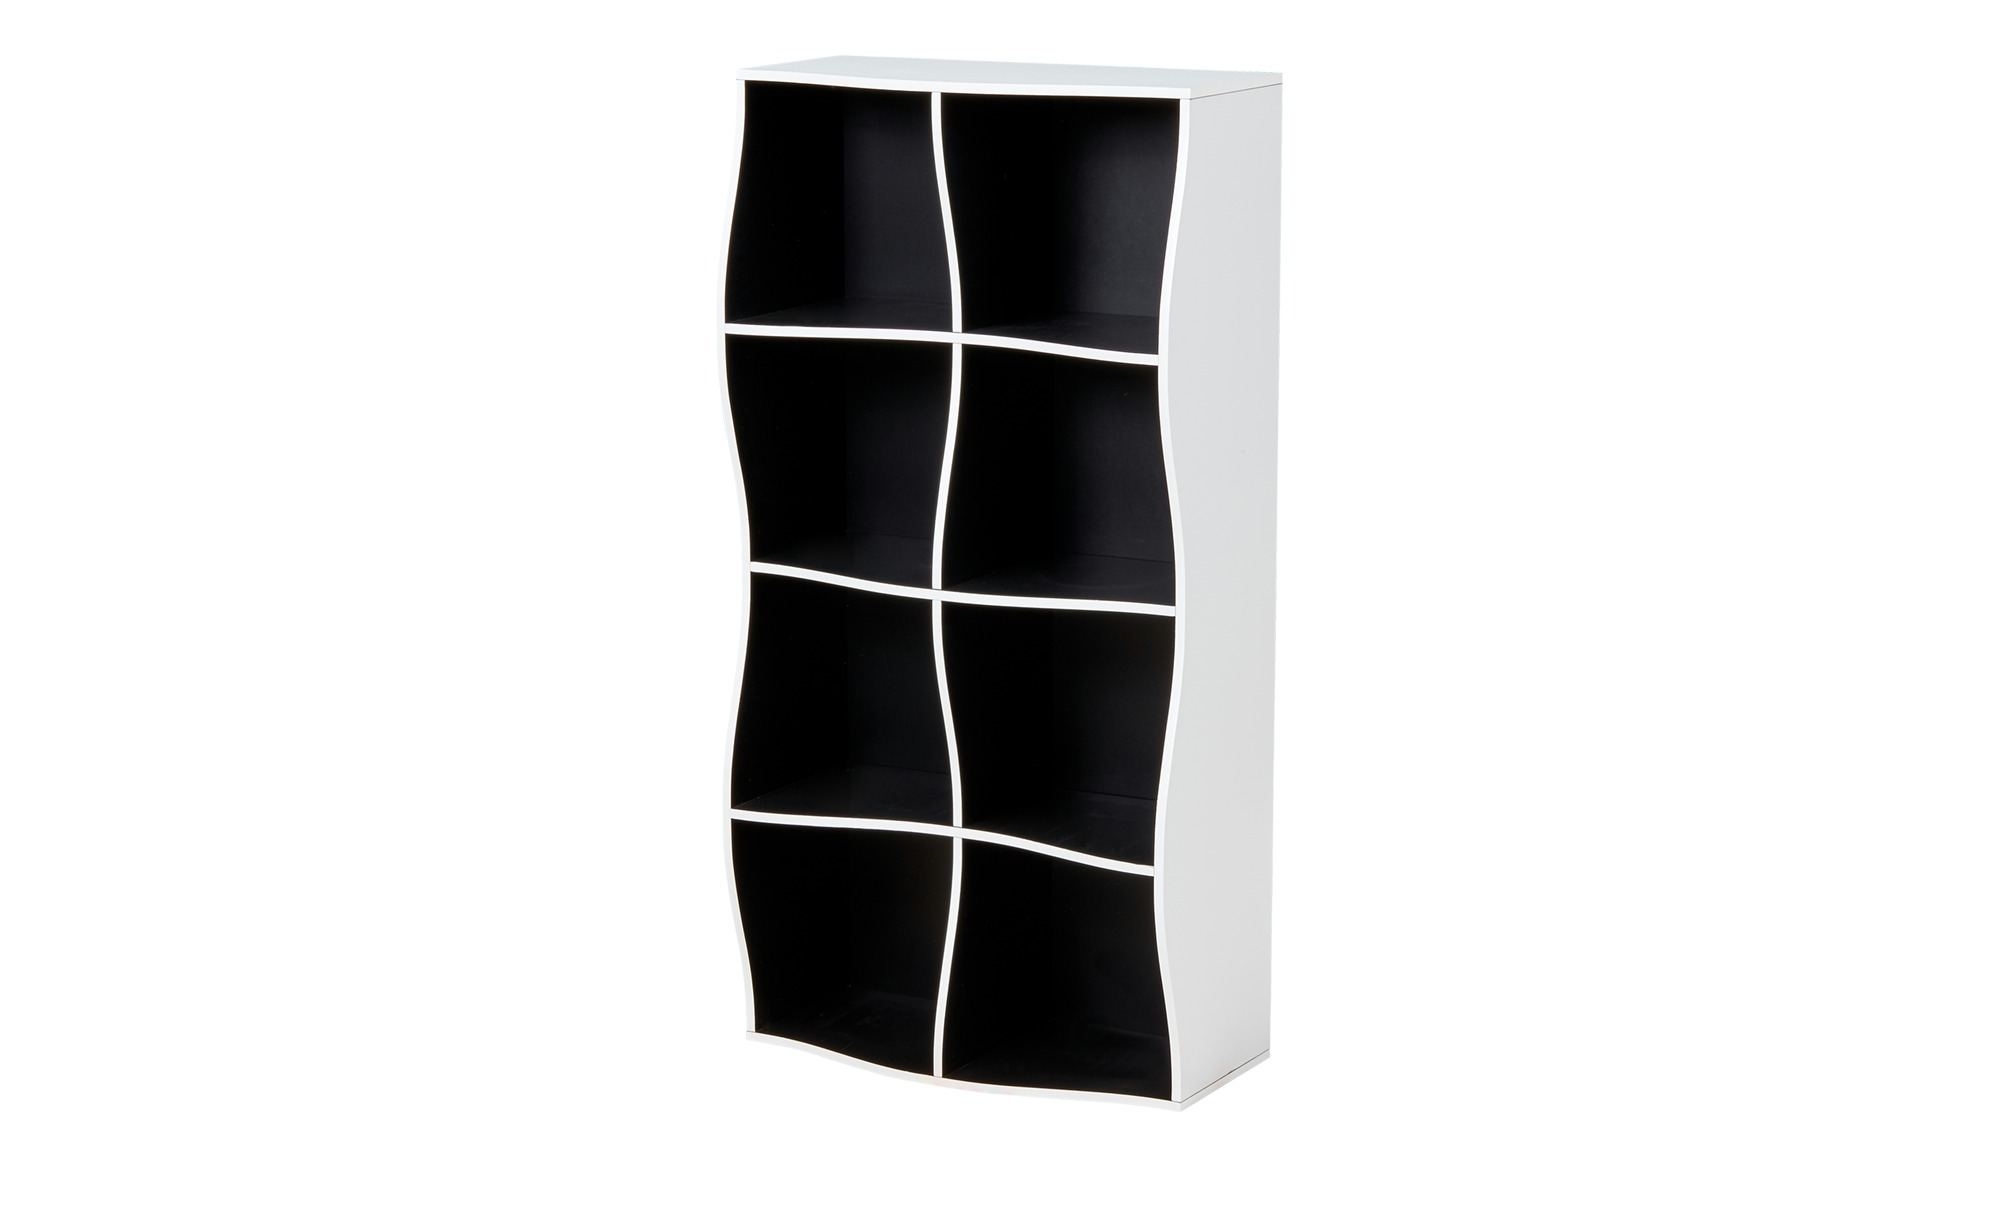 regal curve breite 60 cm h he 120 cm mehrfarbig online kaufen bei woonio. Black Bedroom Furniture Sets. Home Design Ideas